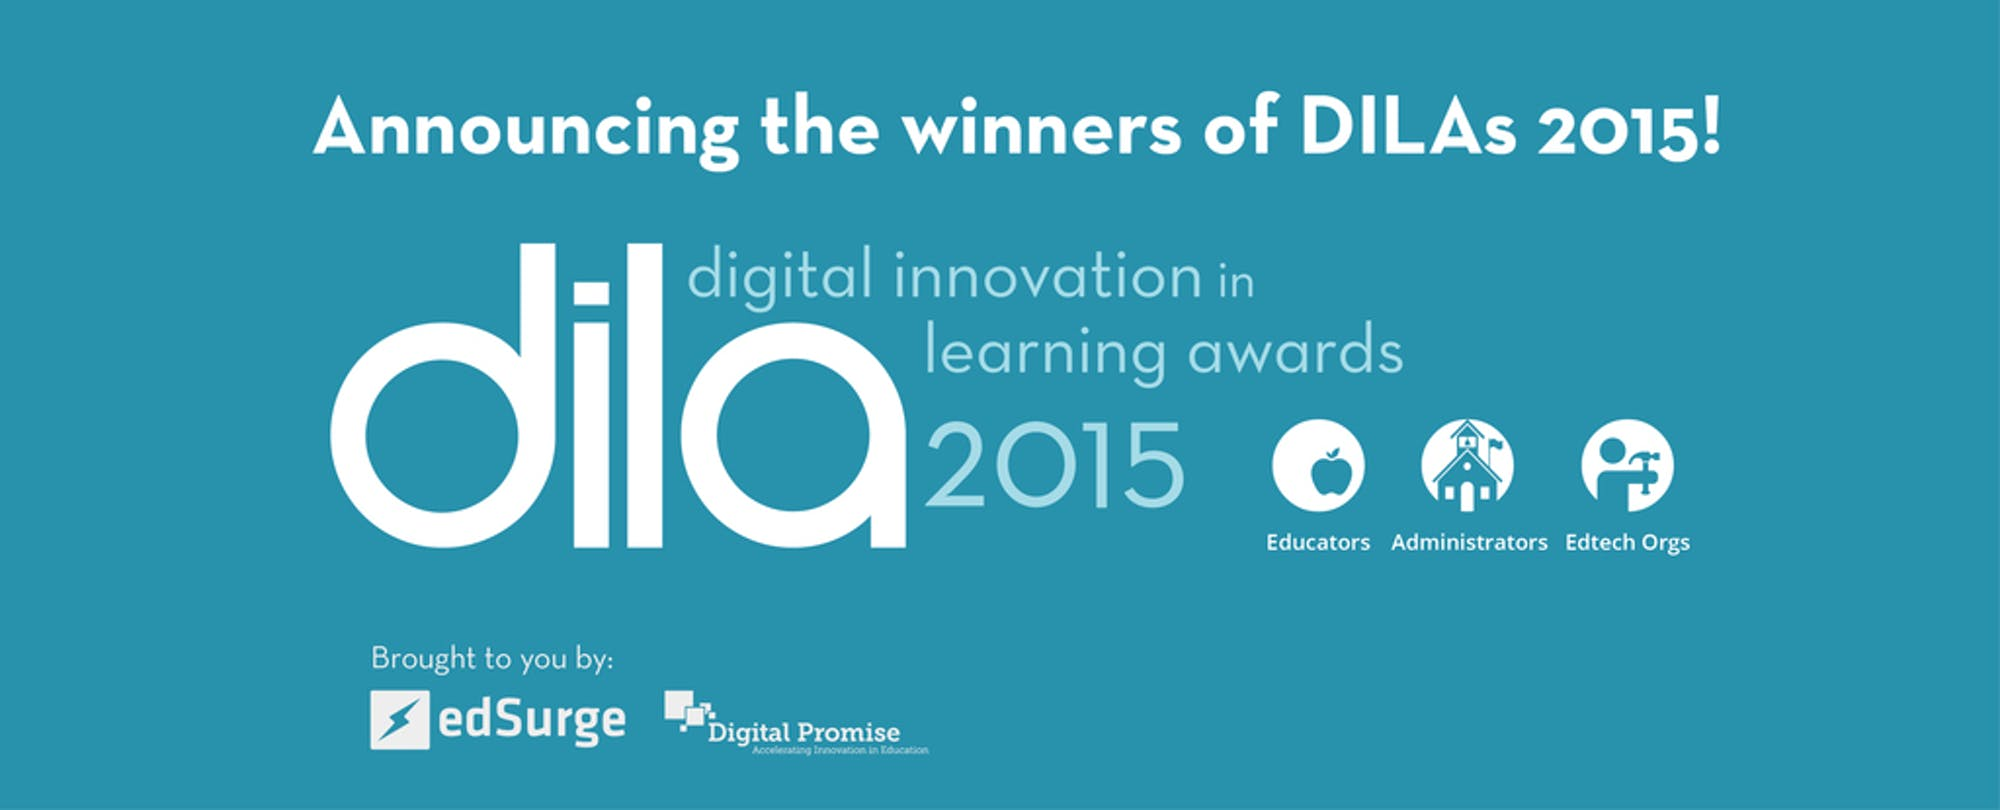 Announcing the Winners of the 2015 Digital Innovation in Learning Awards!